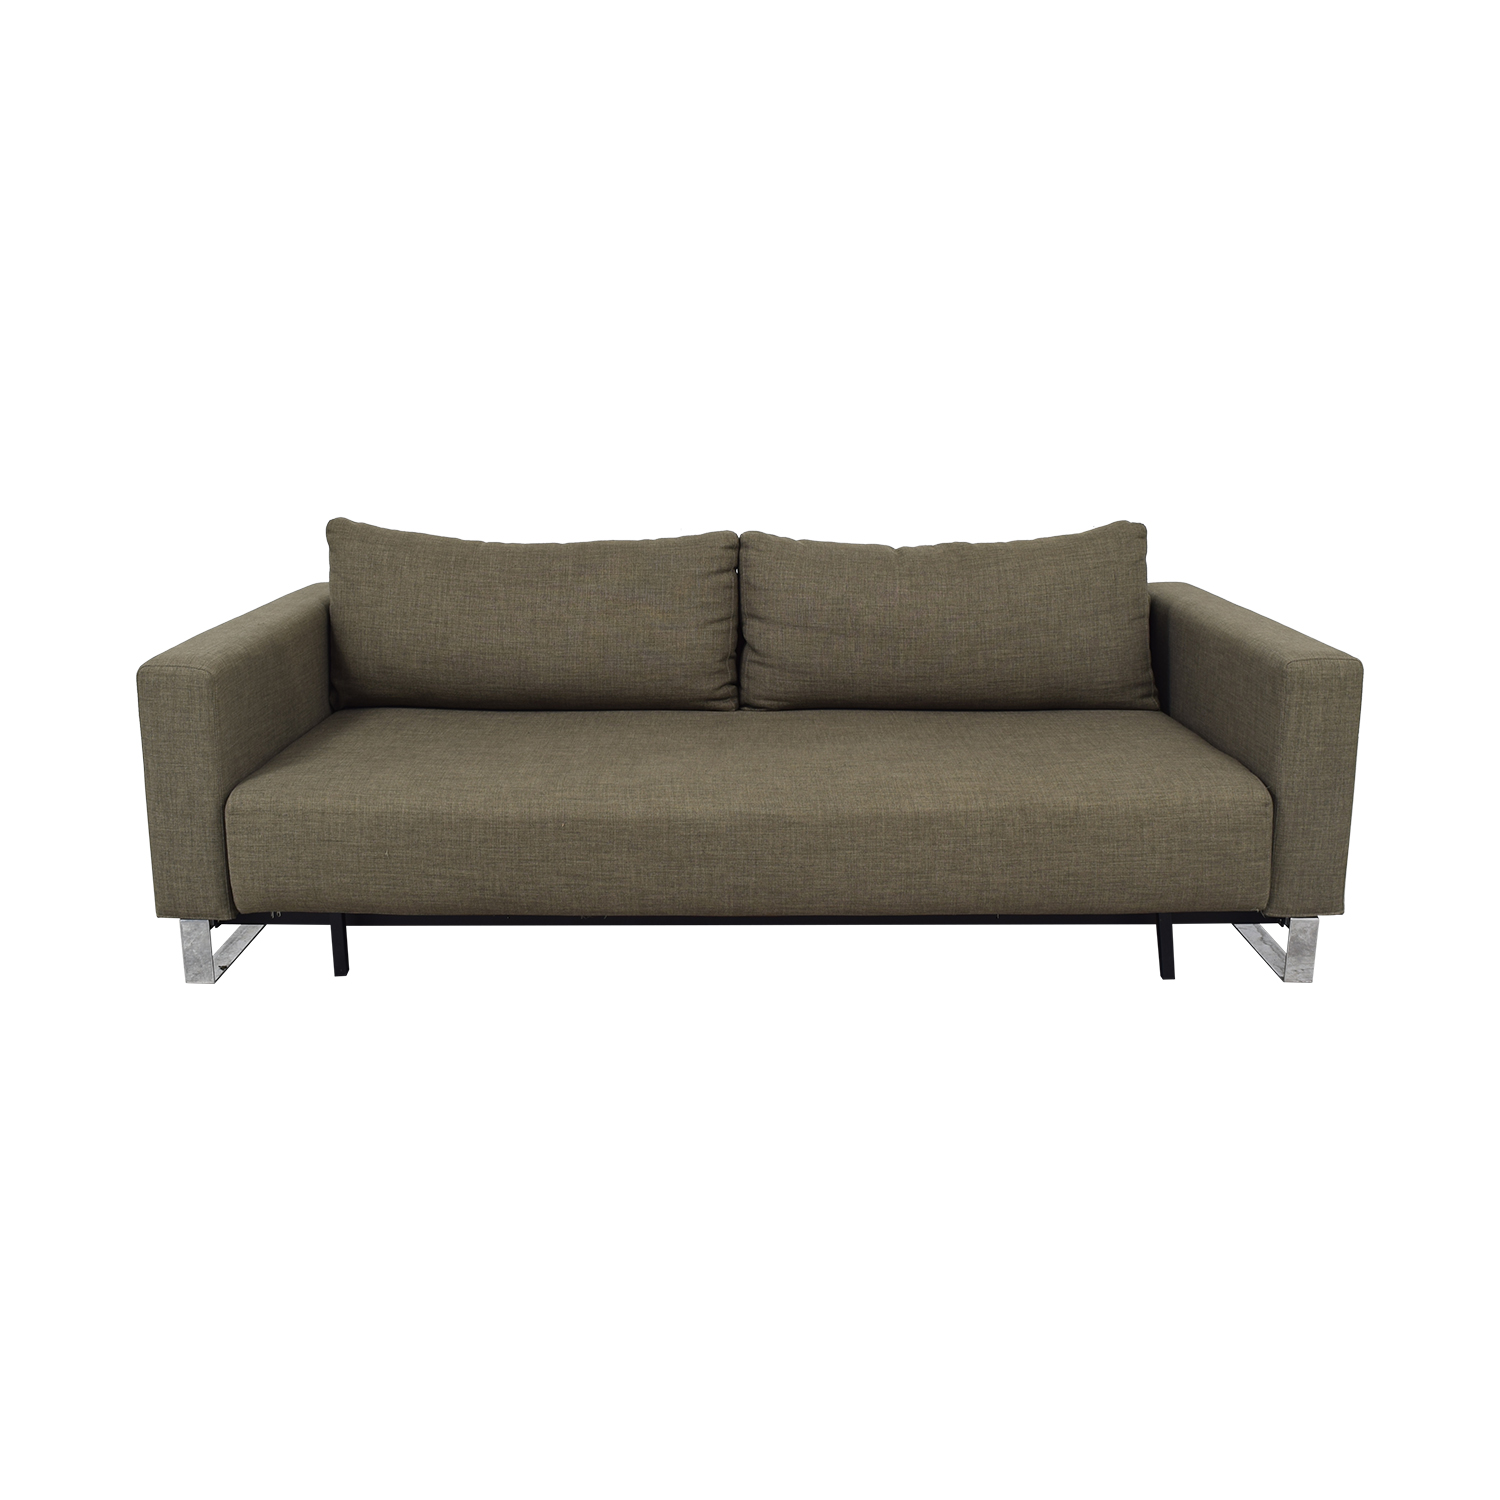 buy Innovation Living Cassius D.E.L. Sofa Bed Innovation Living